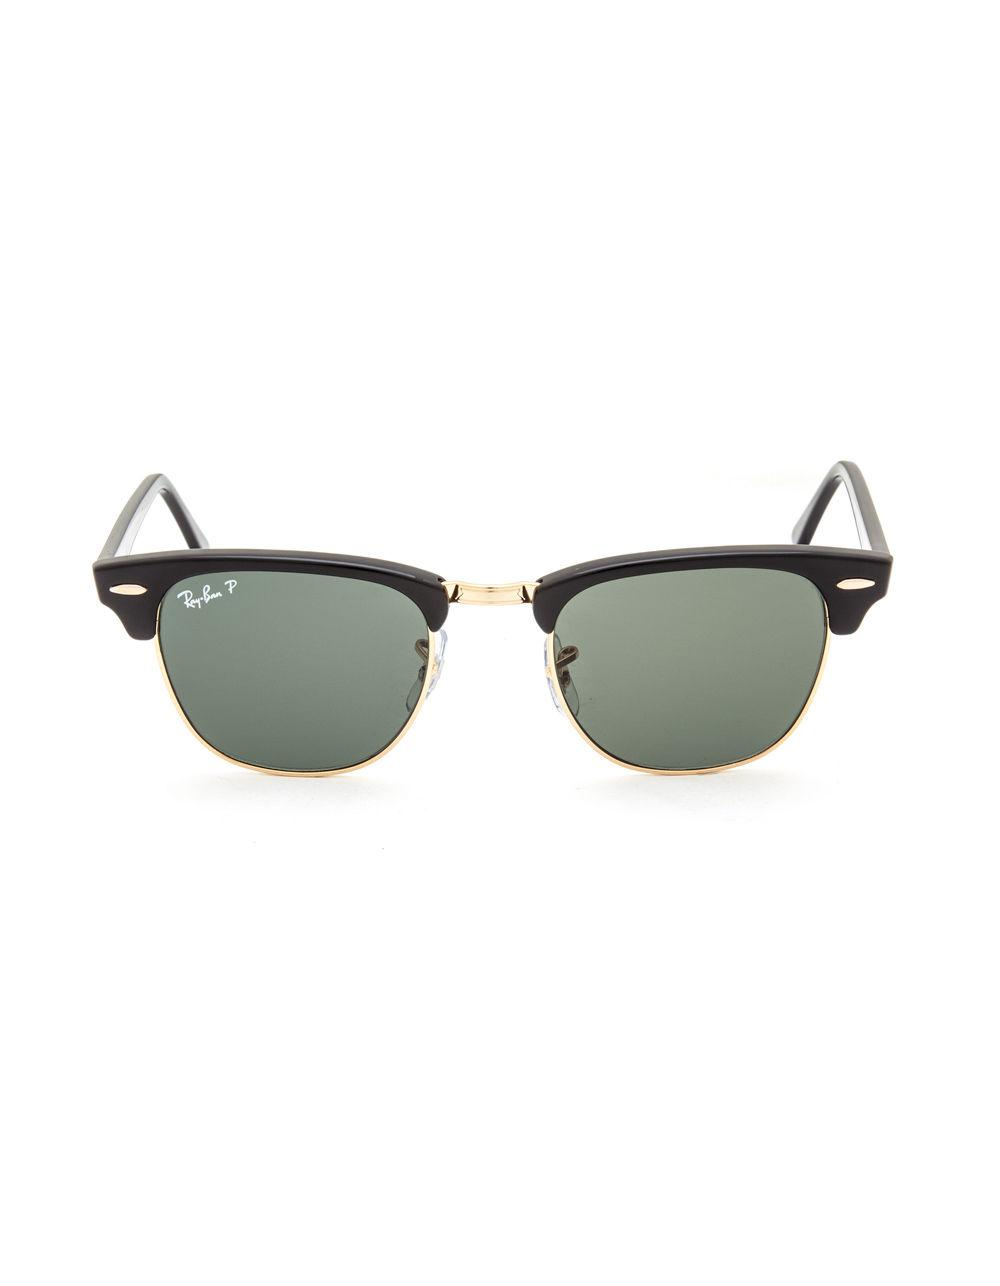 5dcdfb5c6c Lyst - Ray-Ban Clubmaster Classic Polarized Sunglasses in Black for Men